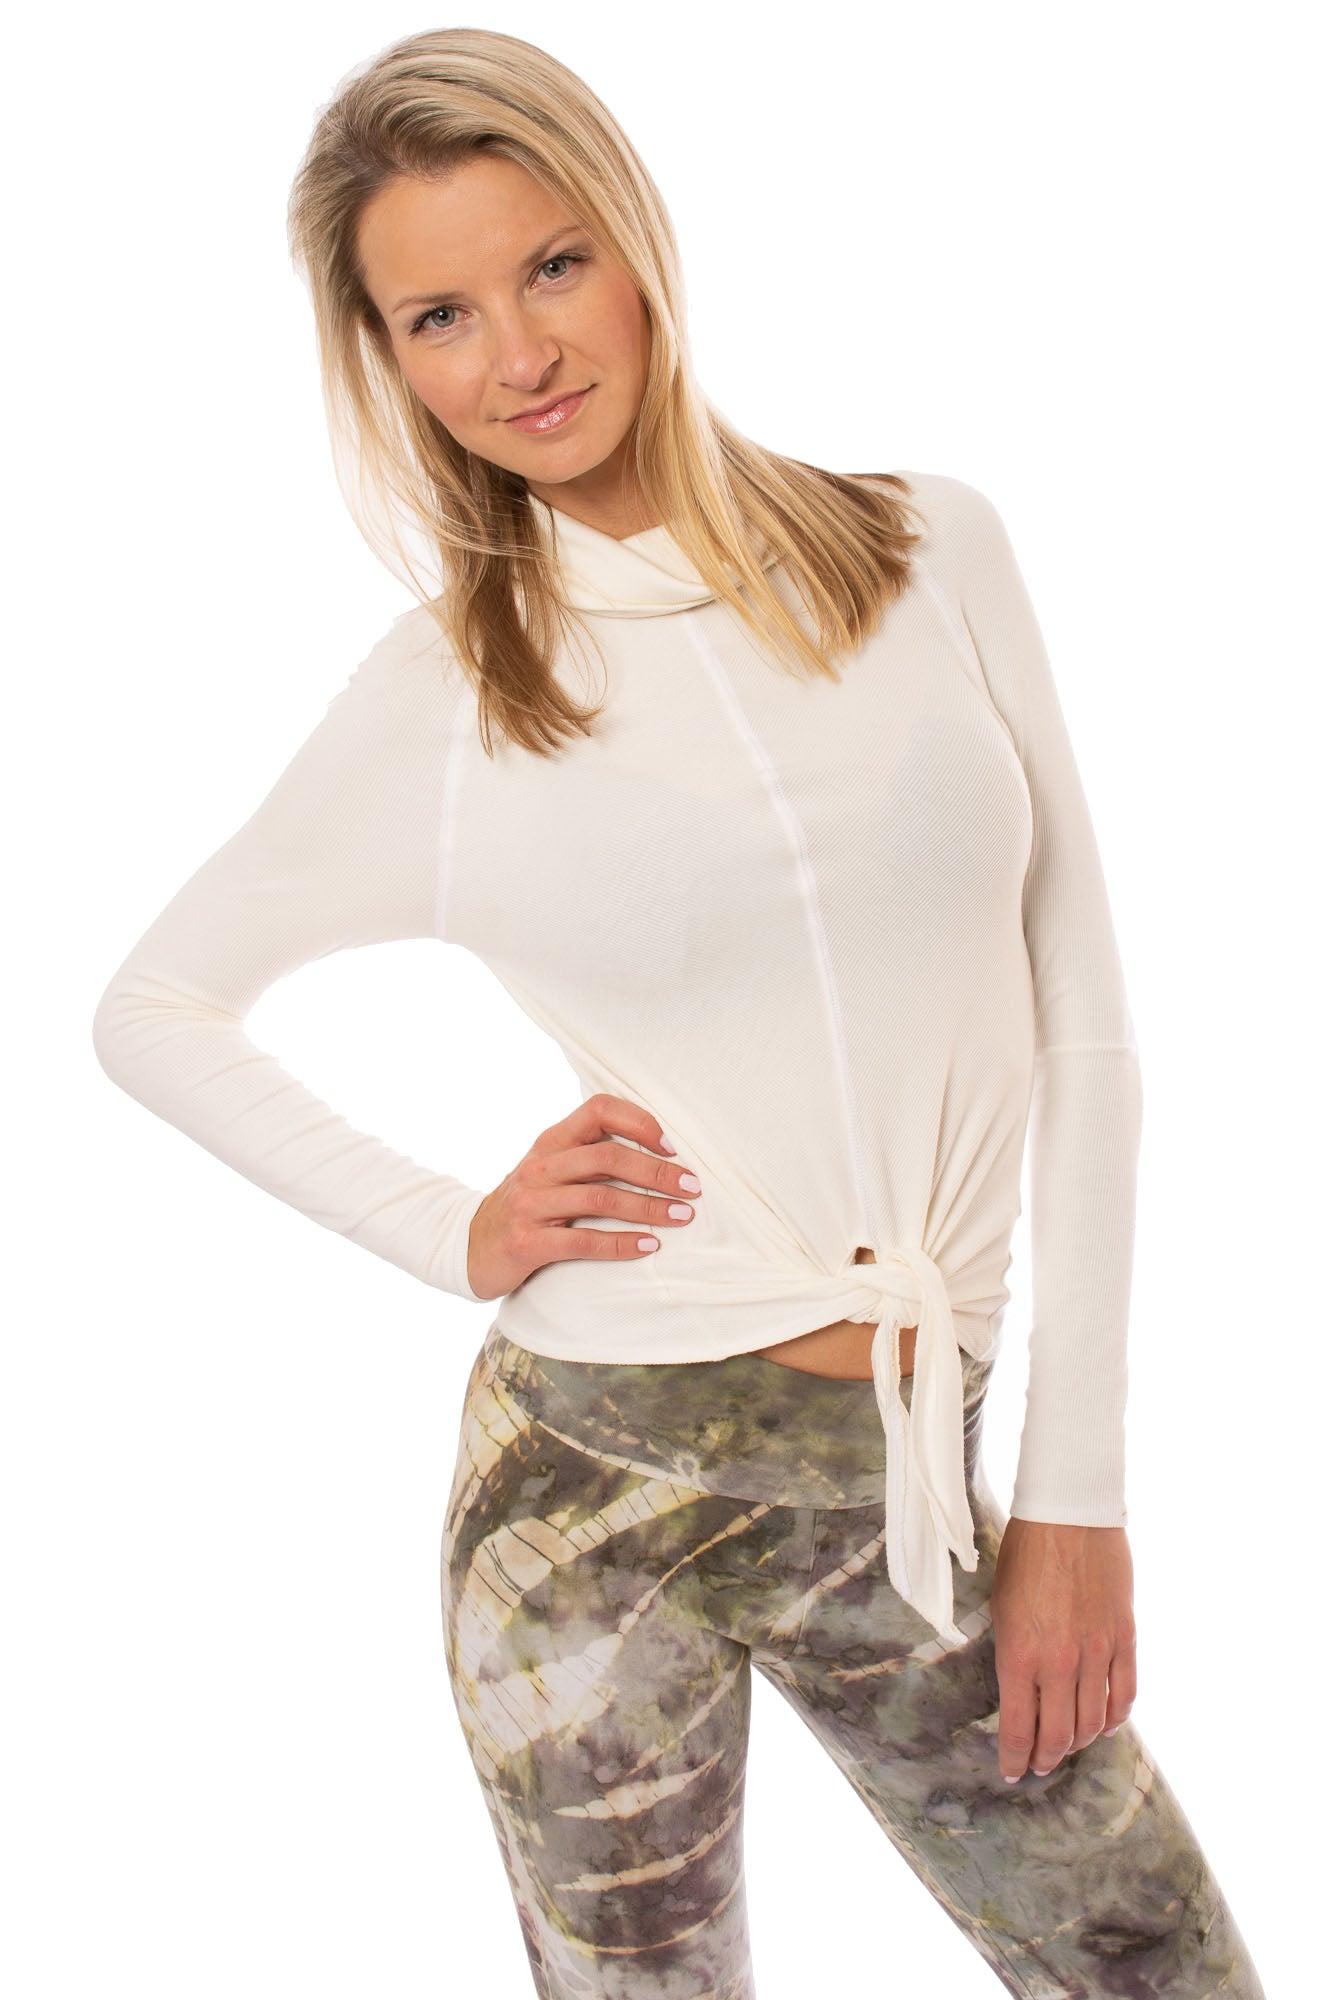 LA Made - Knotty Top (S21027, LA Cream)